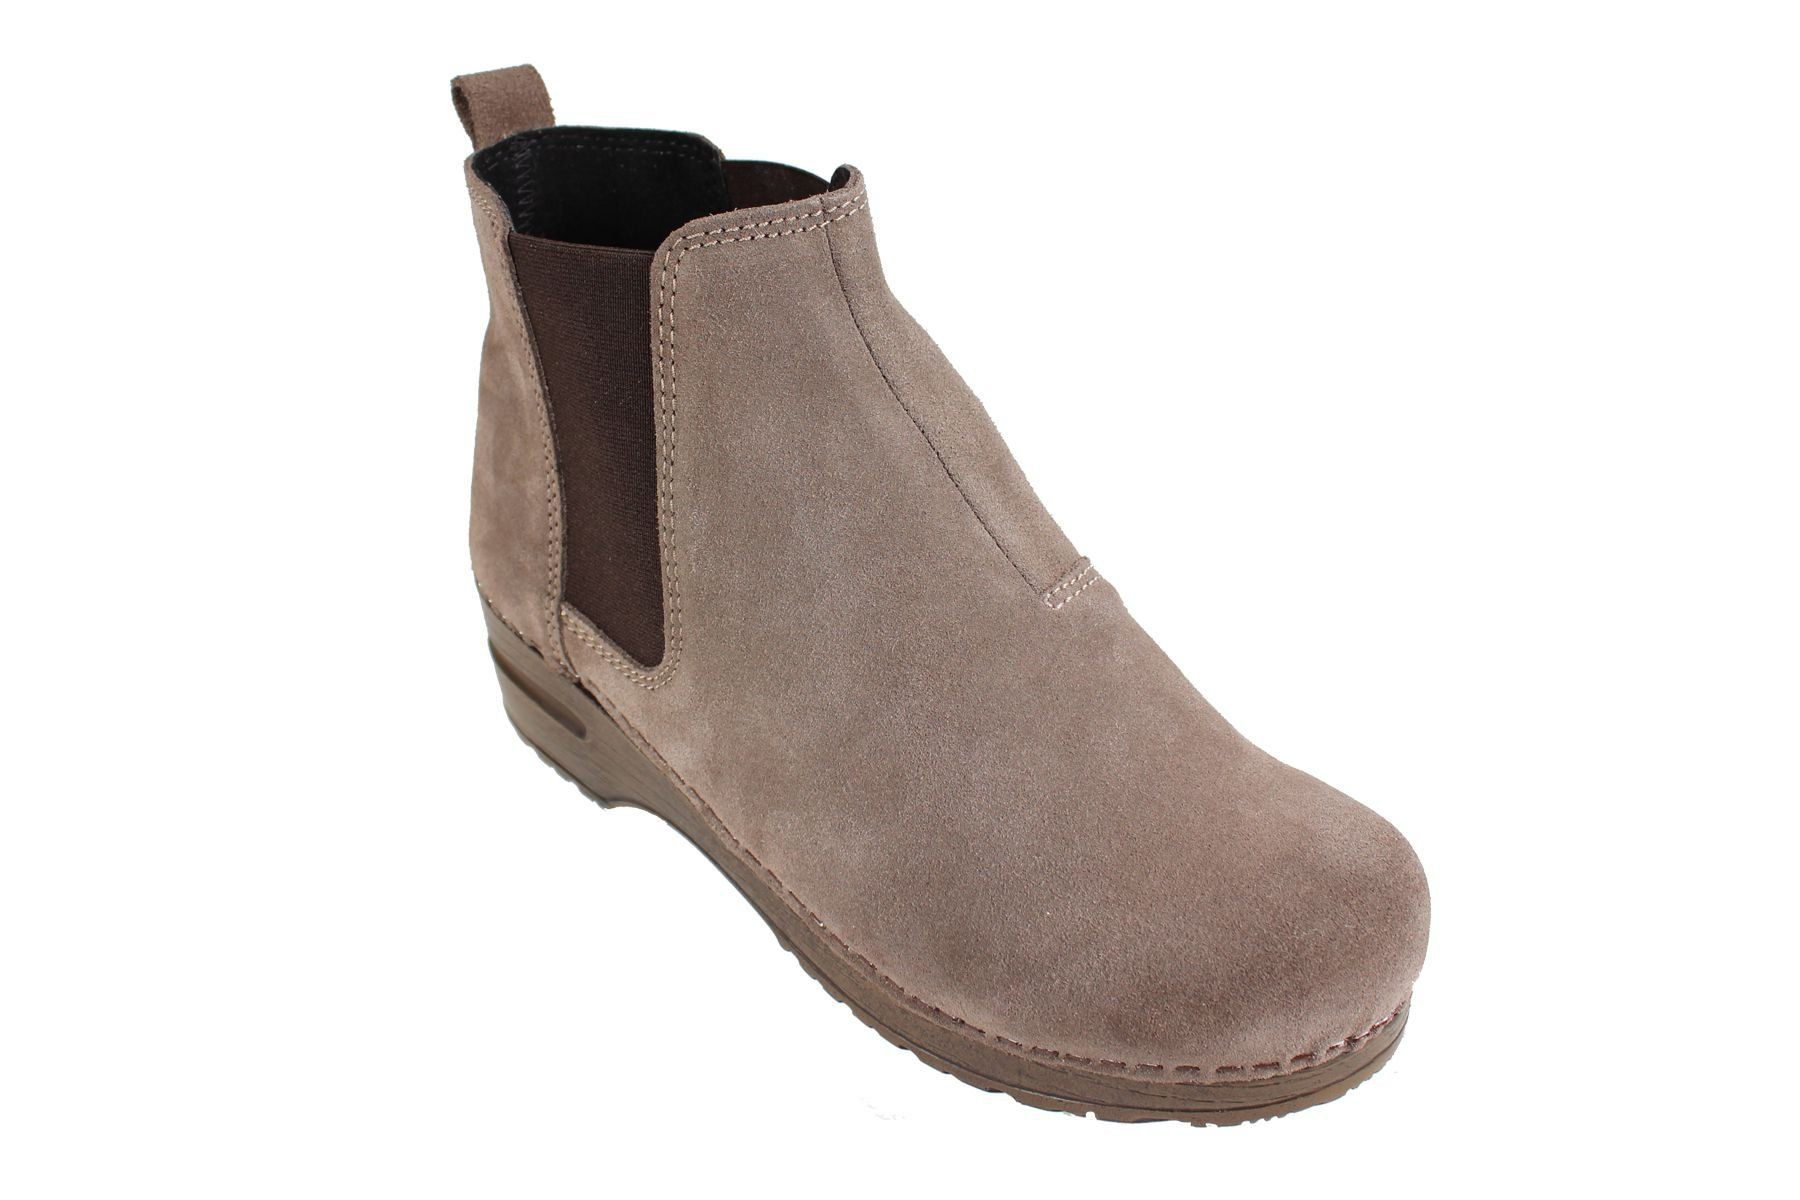 Sanita Vaika Soft Sole Boot in Suede Leather in Taupe